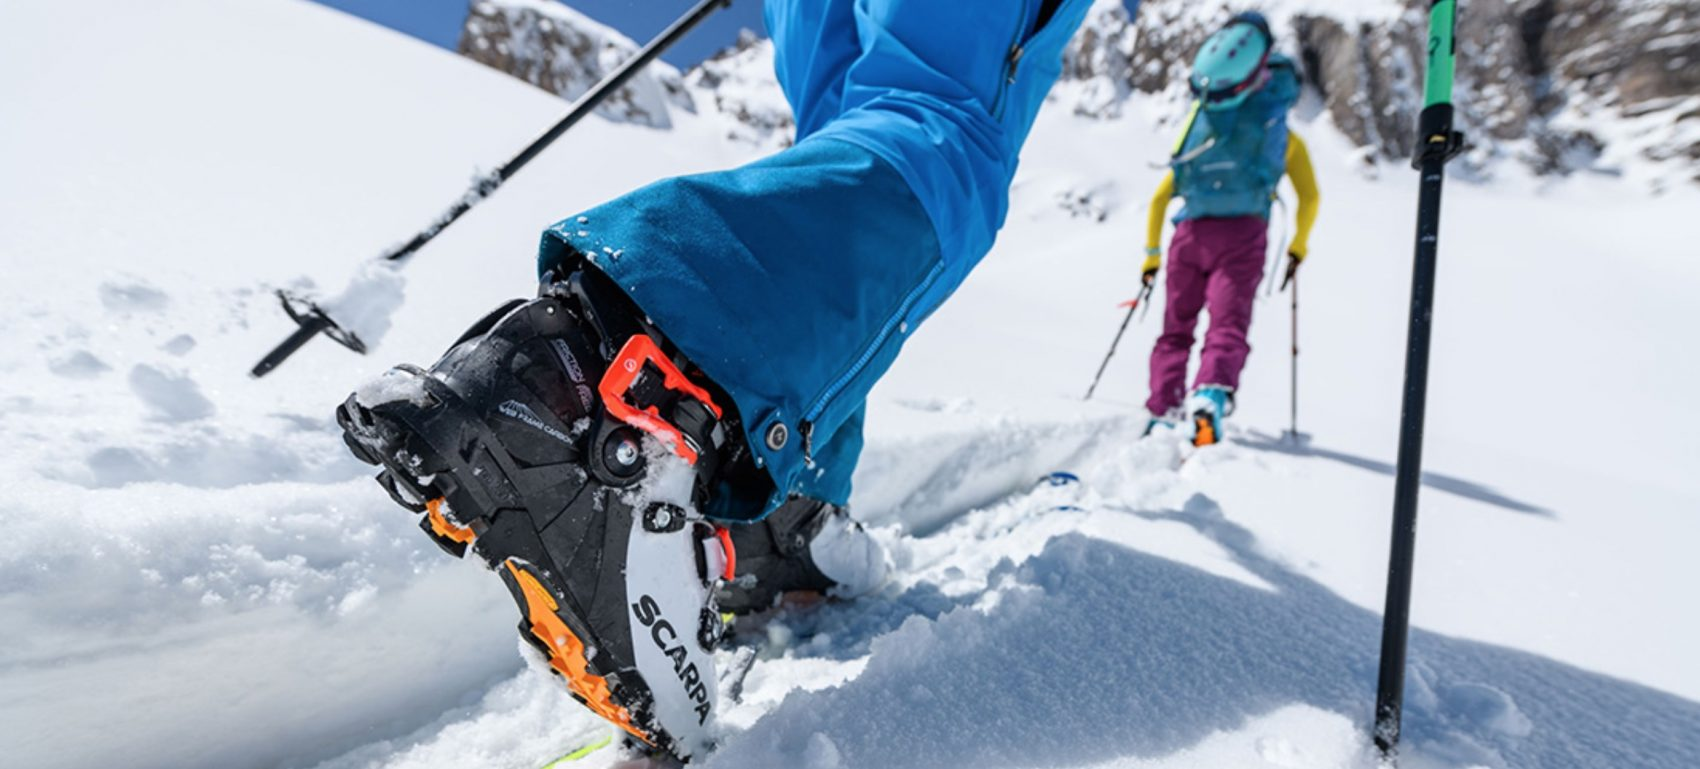 SCARPA Gea RS in action